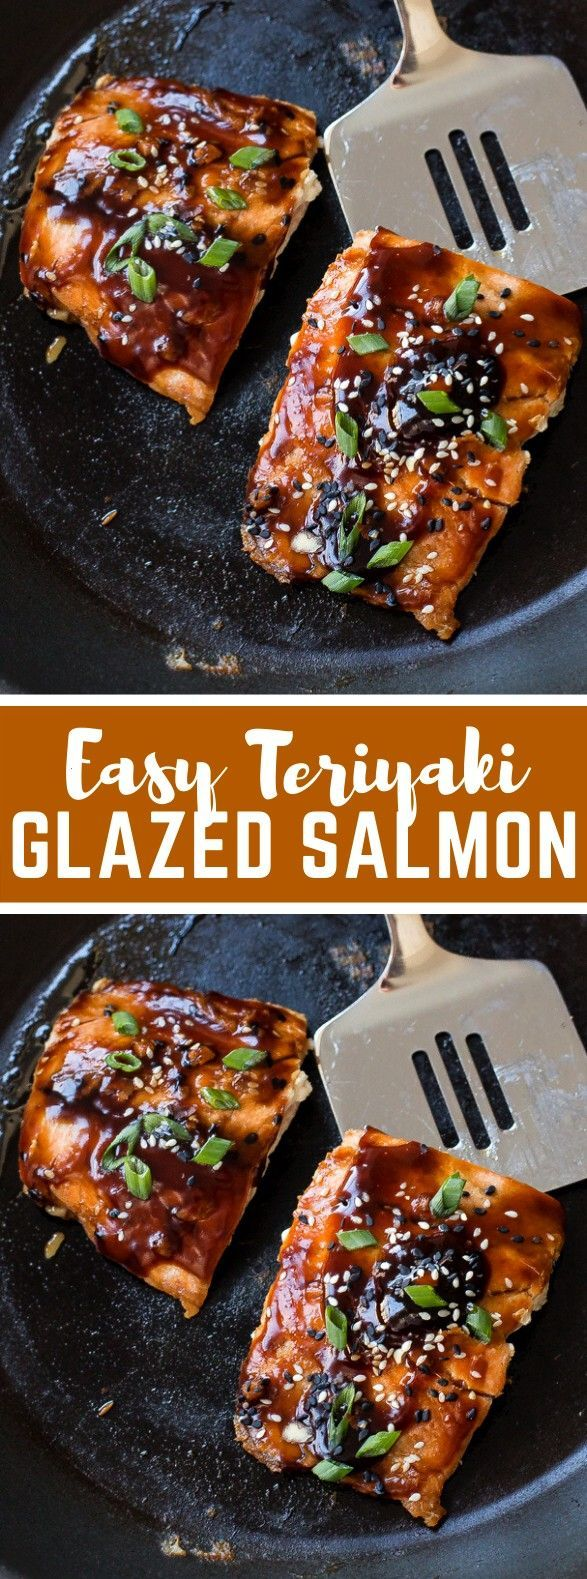 #teriyakisalmon #teriyaki #homemade #salmon #dinner #lunch #easyEasy Teriyaki Salmon Easy Teriyaki Salmon Easy Teriyaki Salmon Easy Teriyaki SalmonEasy Teriyaki Salmon Easy Teriyaki Salmon Easy Teriyaki Salmon Easy Teriyaki Salmon  Keep food fresh easier, and longer than ever with the revolutionary Food Preservation Tray. Reusable forever, simply insert any food and close the top to create an airtight, leakproof seal with absolutely zero-waste and without the hassle of sticky, unreliable ... #te #teriyakisalmon